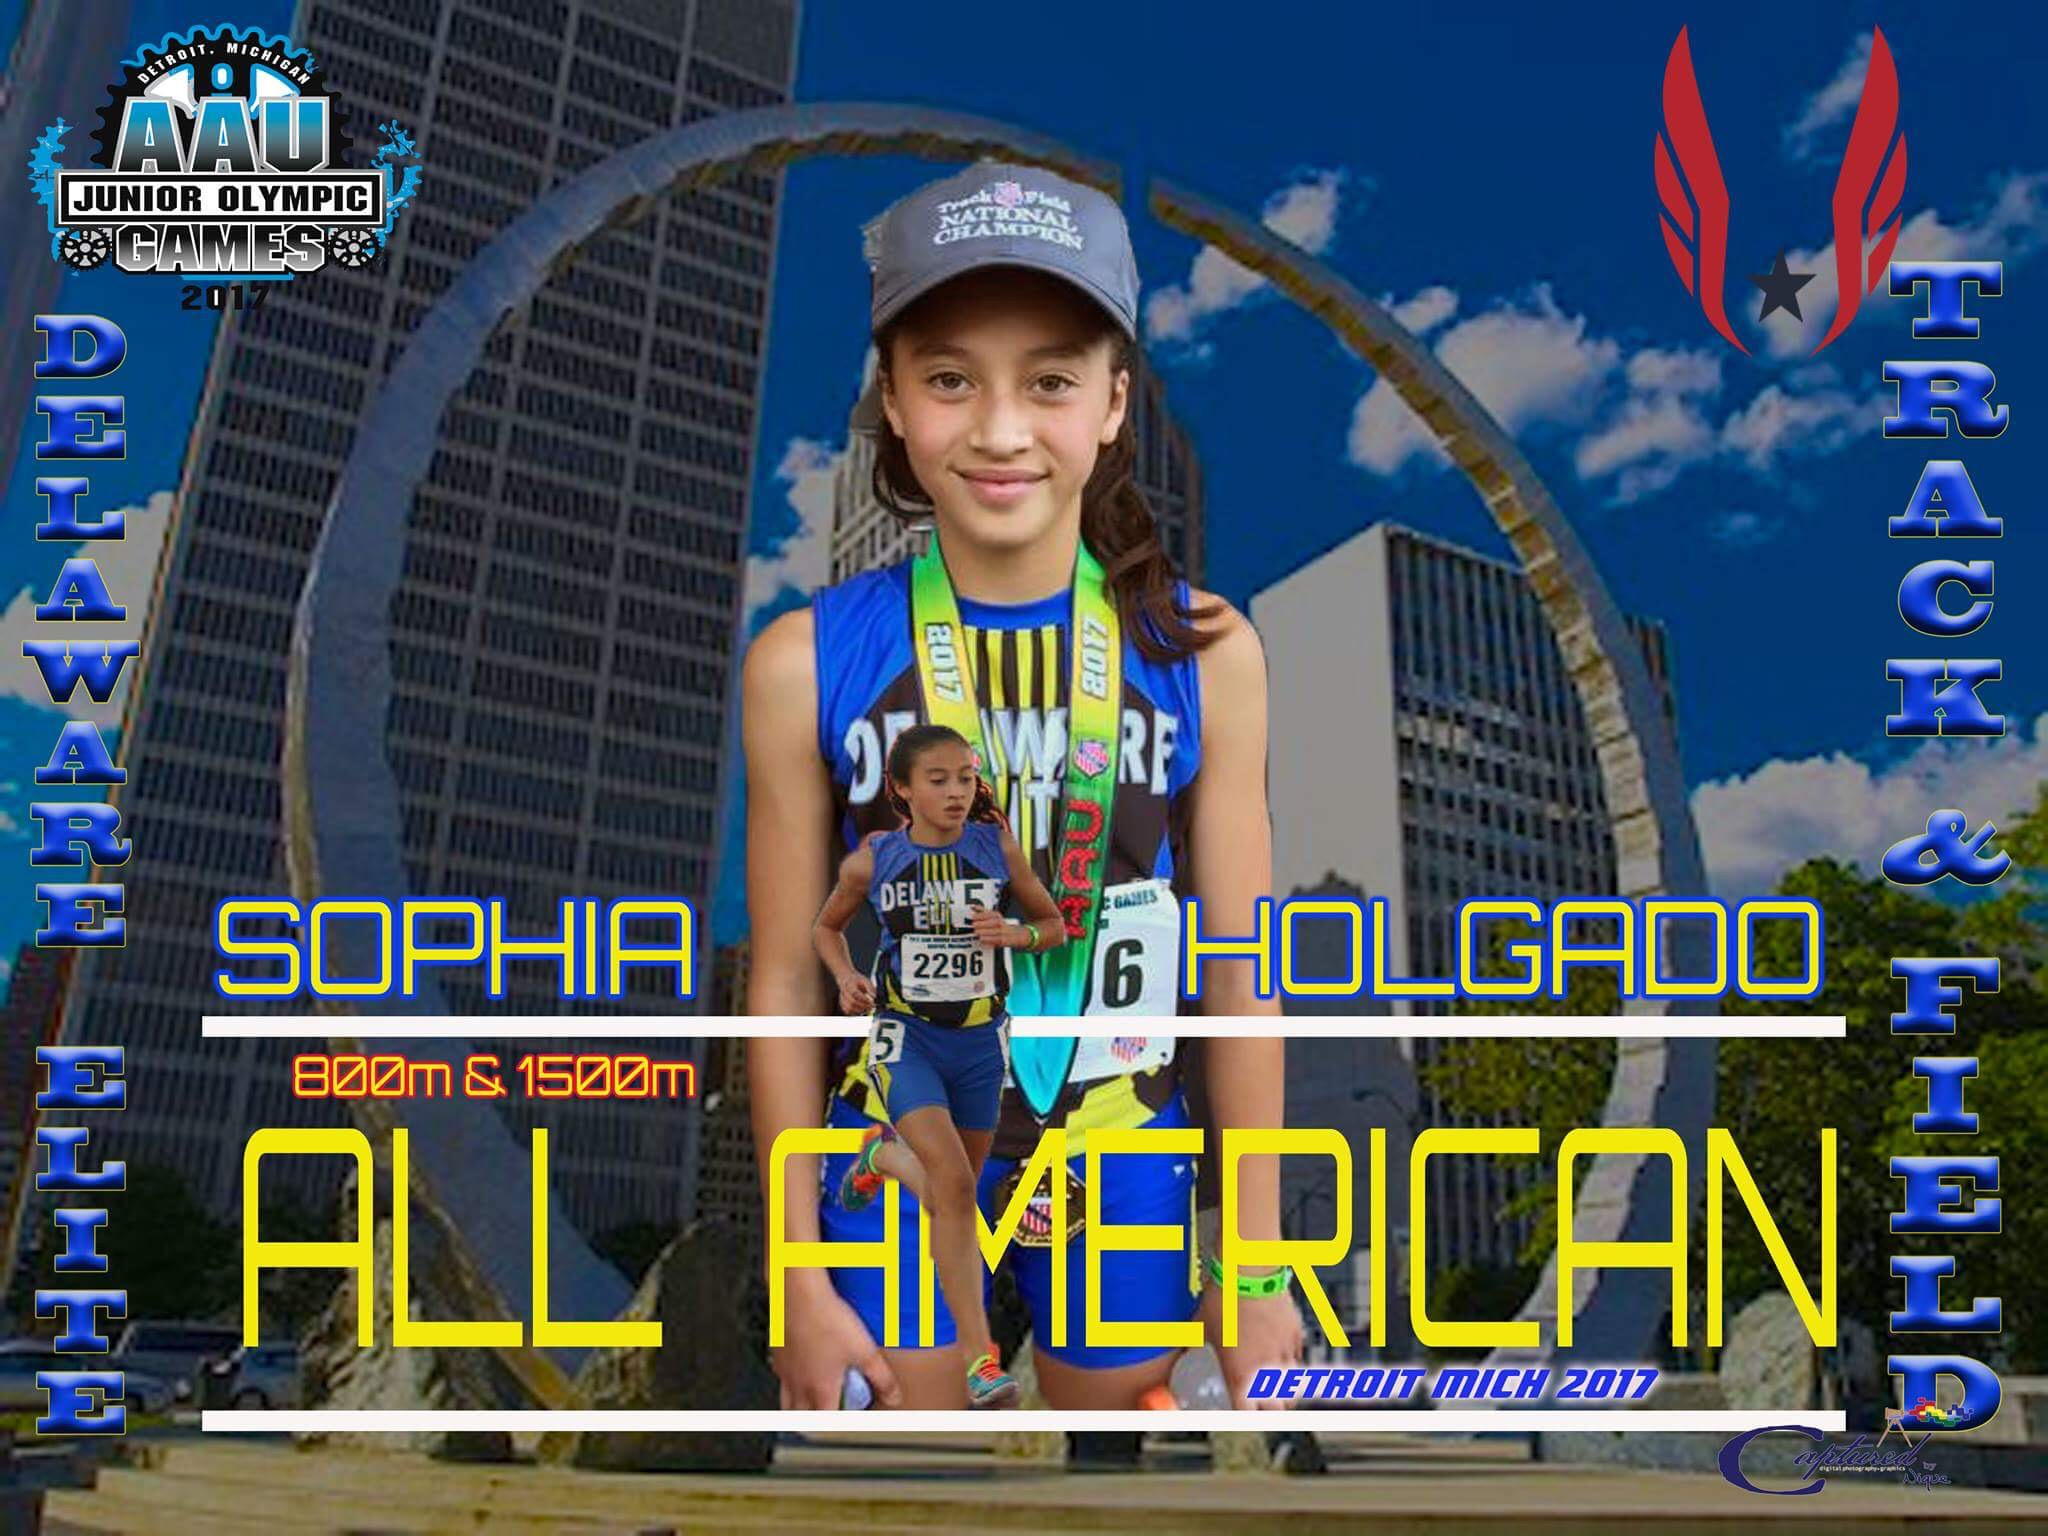 Sophia Holgado - #1 in the Nation in 3000m & 5000m - 11/12 age division